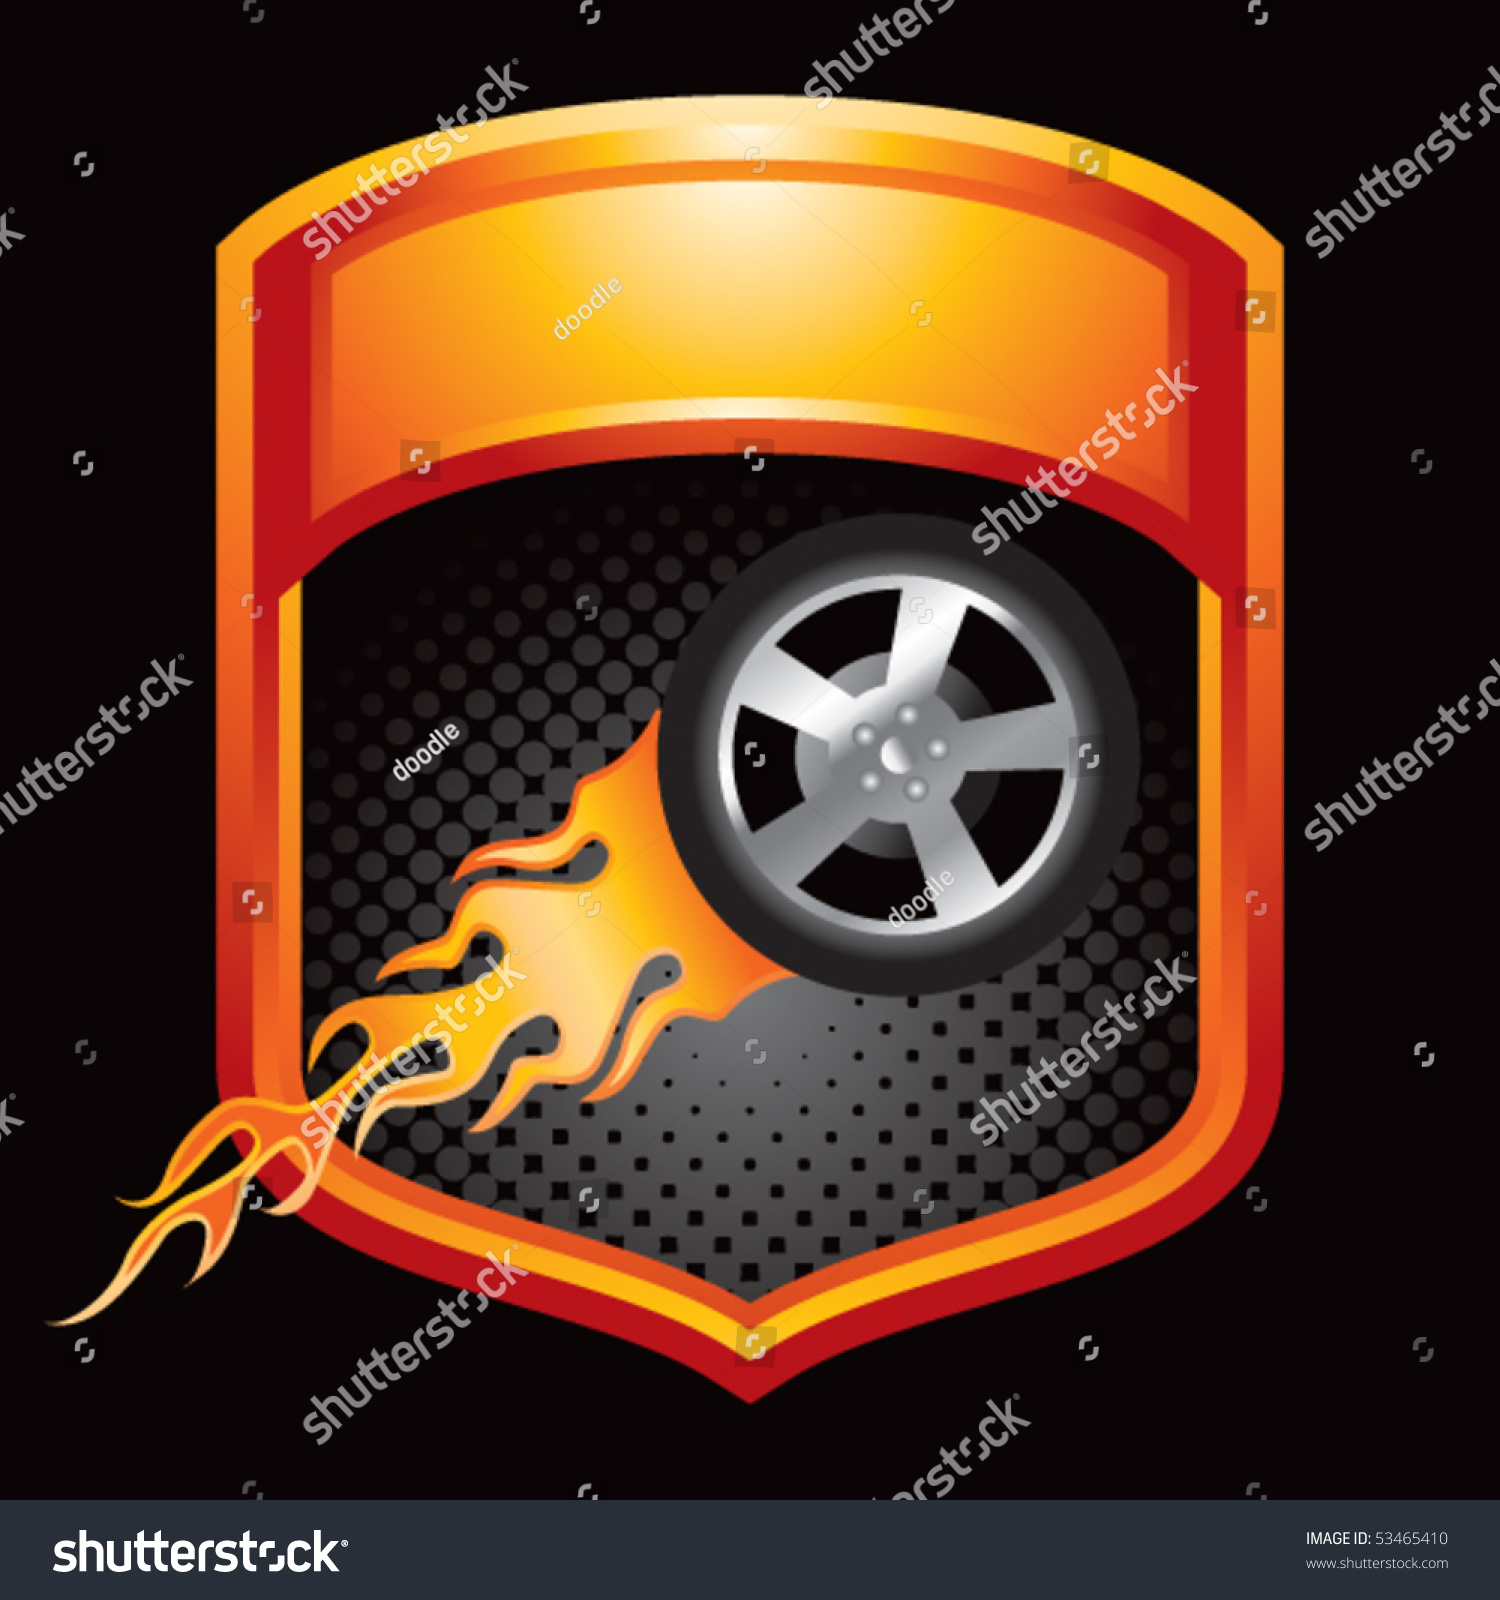 Flaming Tires Clipart | Free Images at Clker.com - vector ... |Flamming Tire